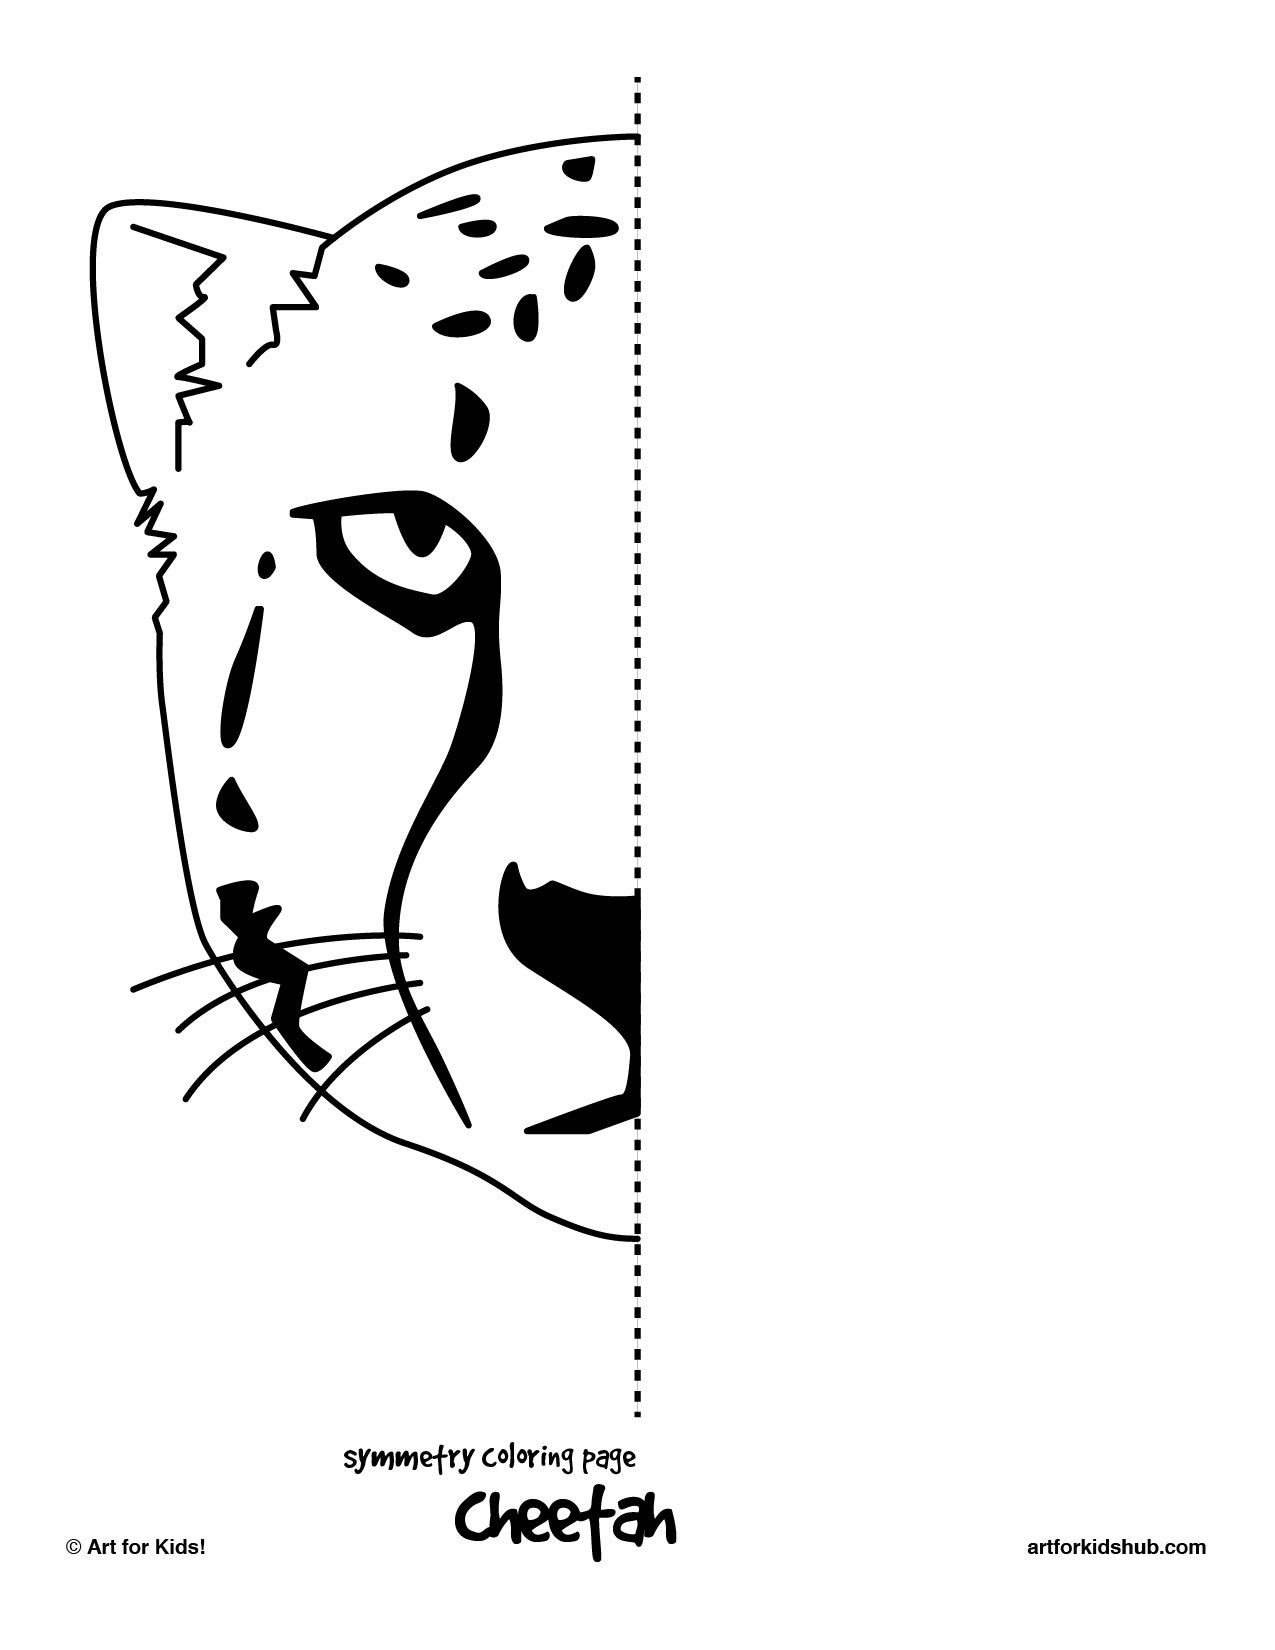 Symmetry Coloring Pages With Images